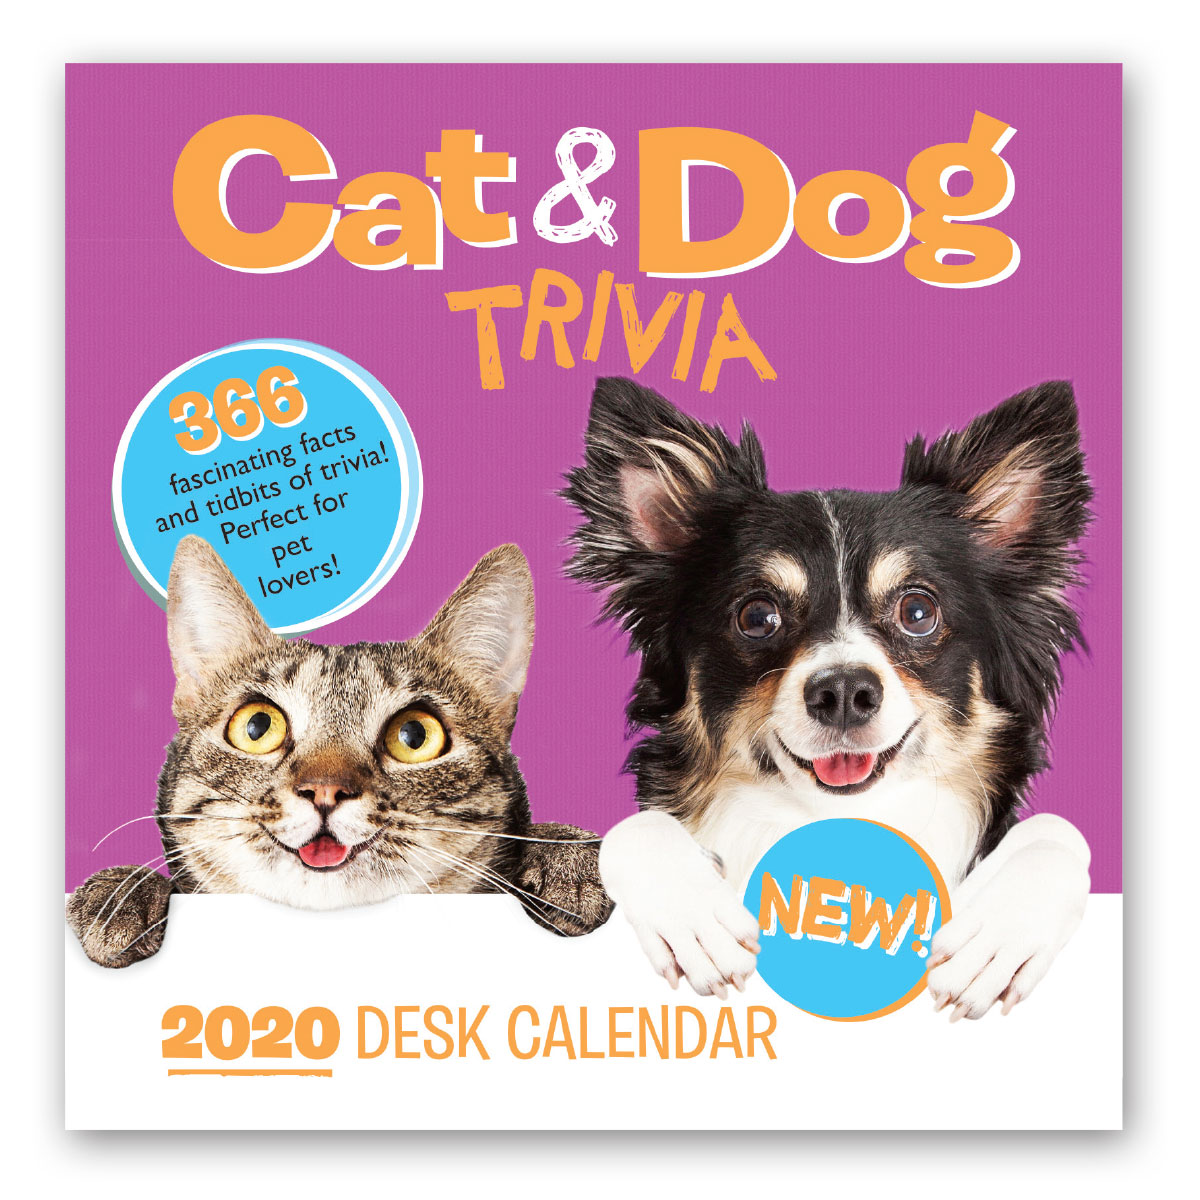 2020 Desk Calendar - Cat & Dog Trivia